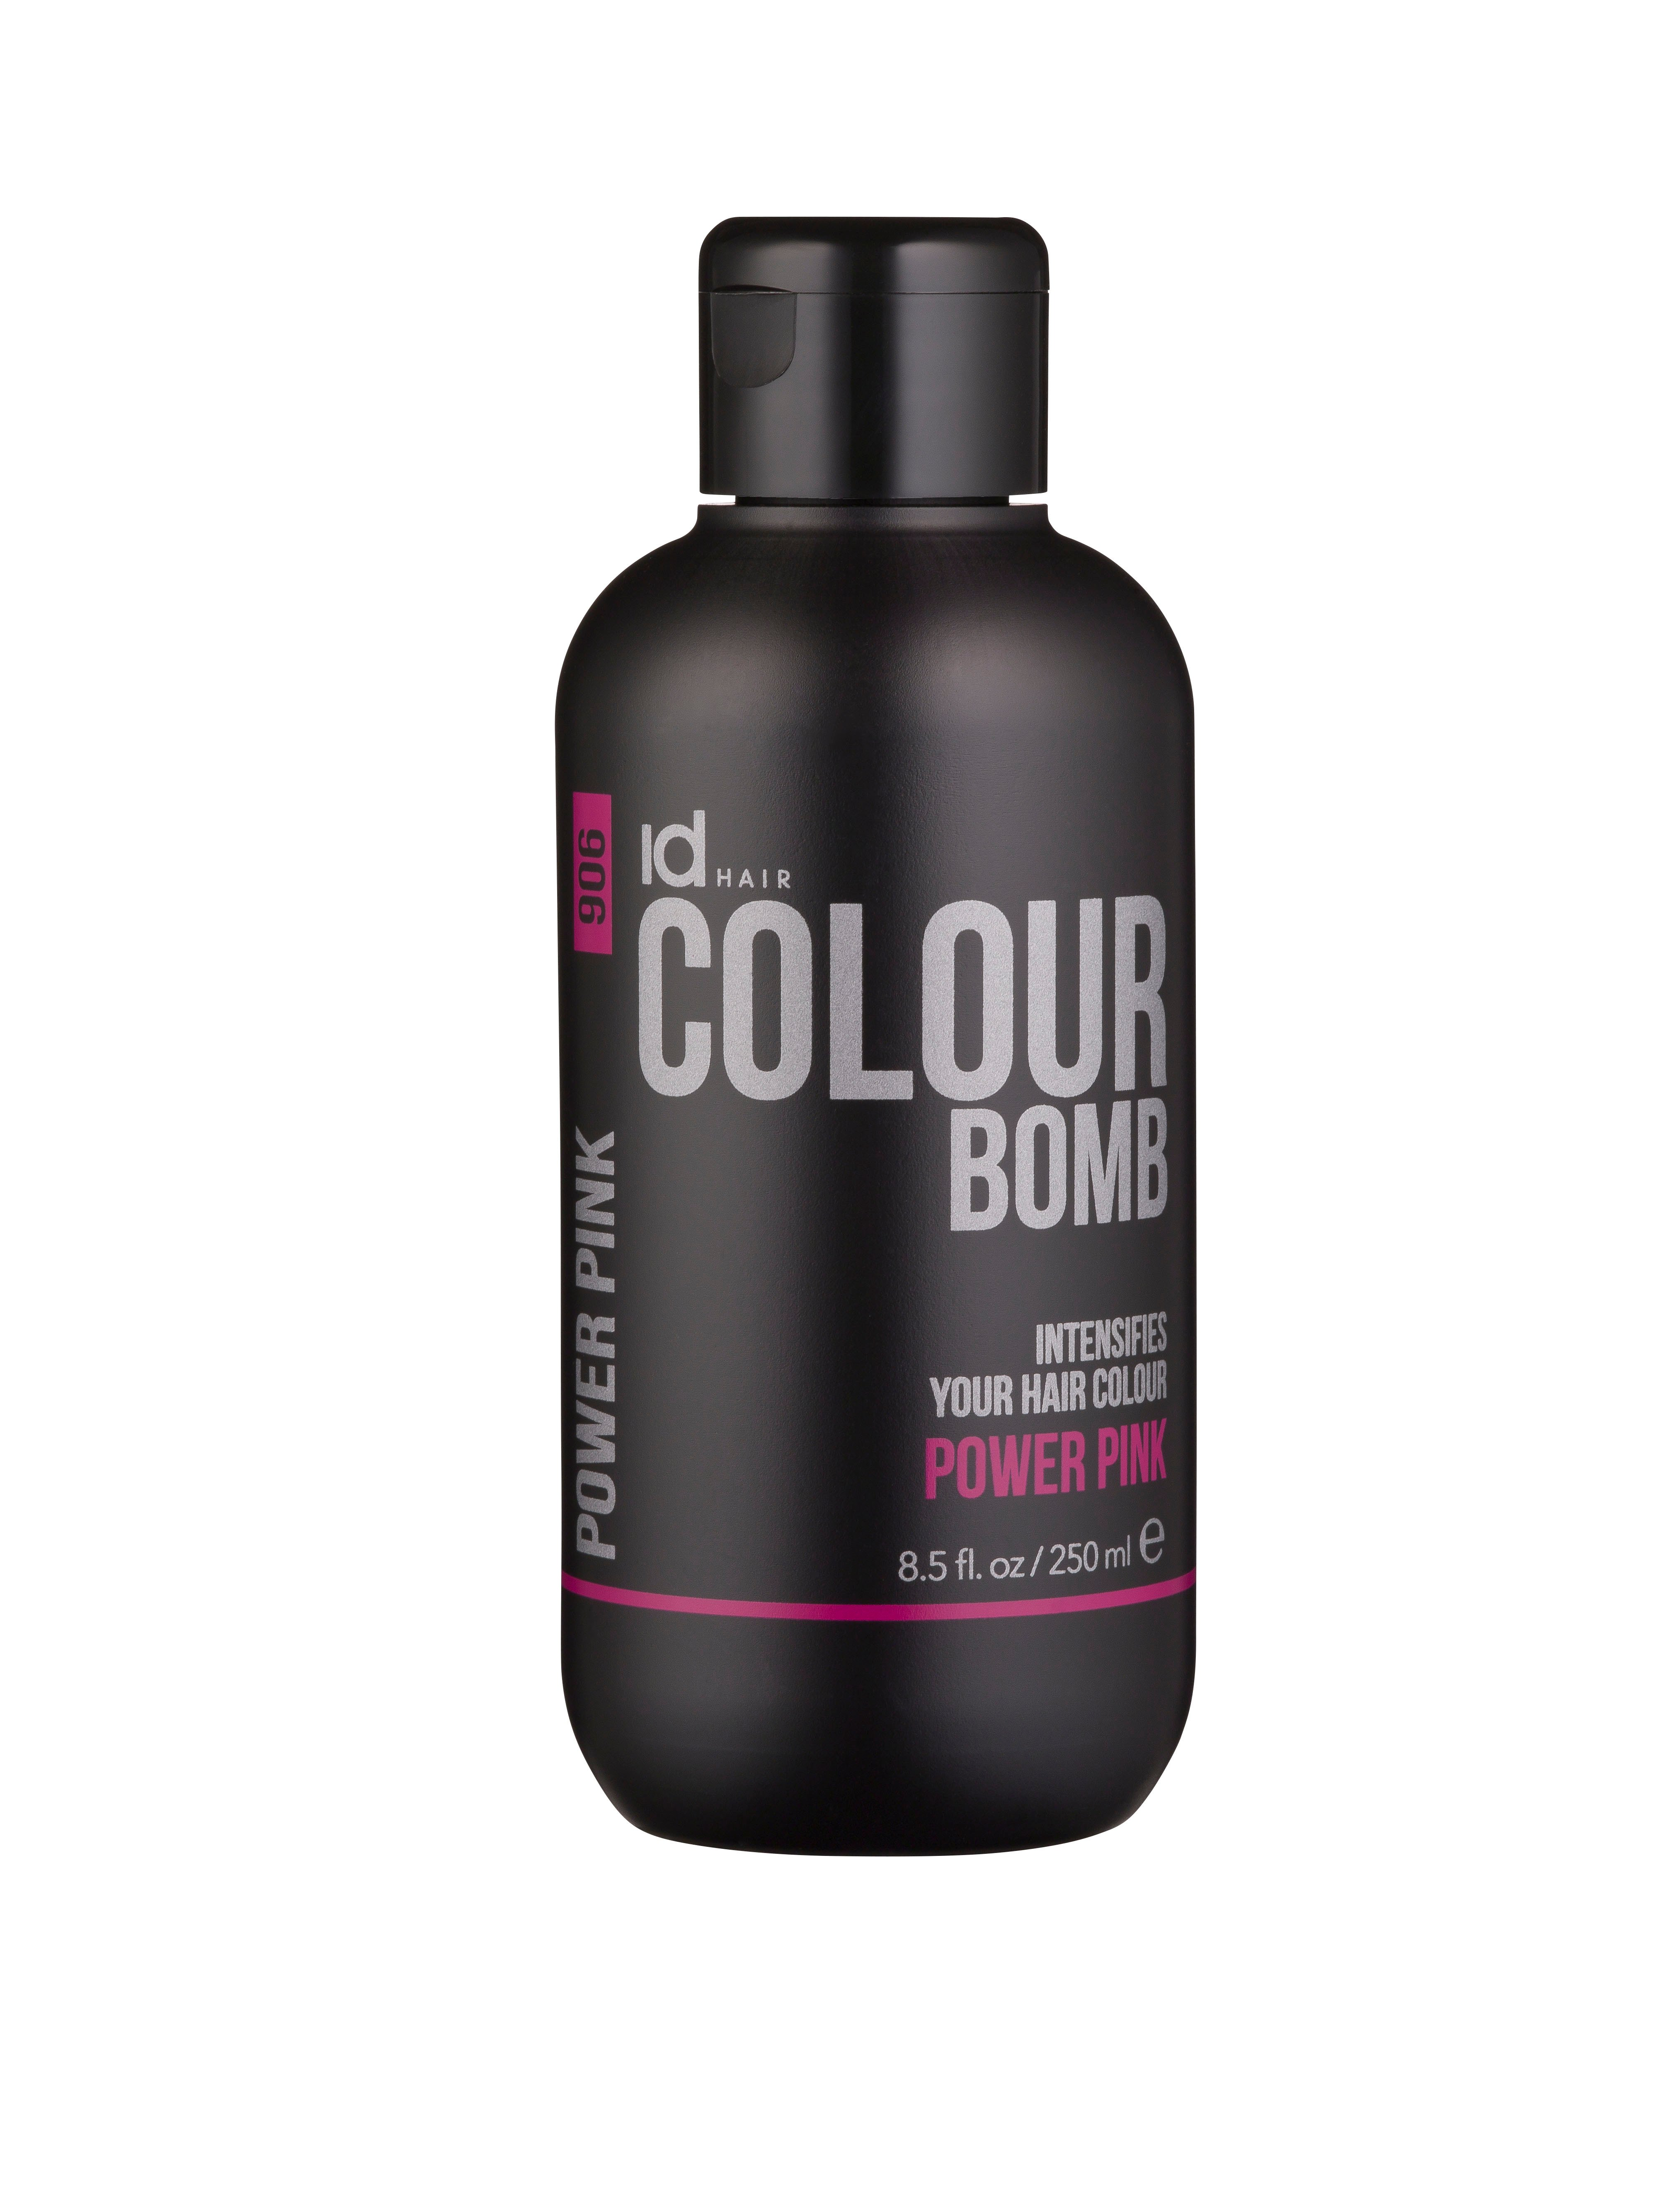 IdHAIR - Colour Bomb 250 ml - Power Pink